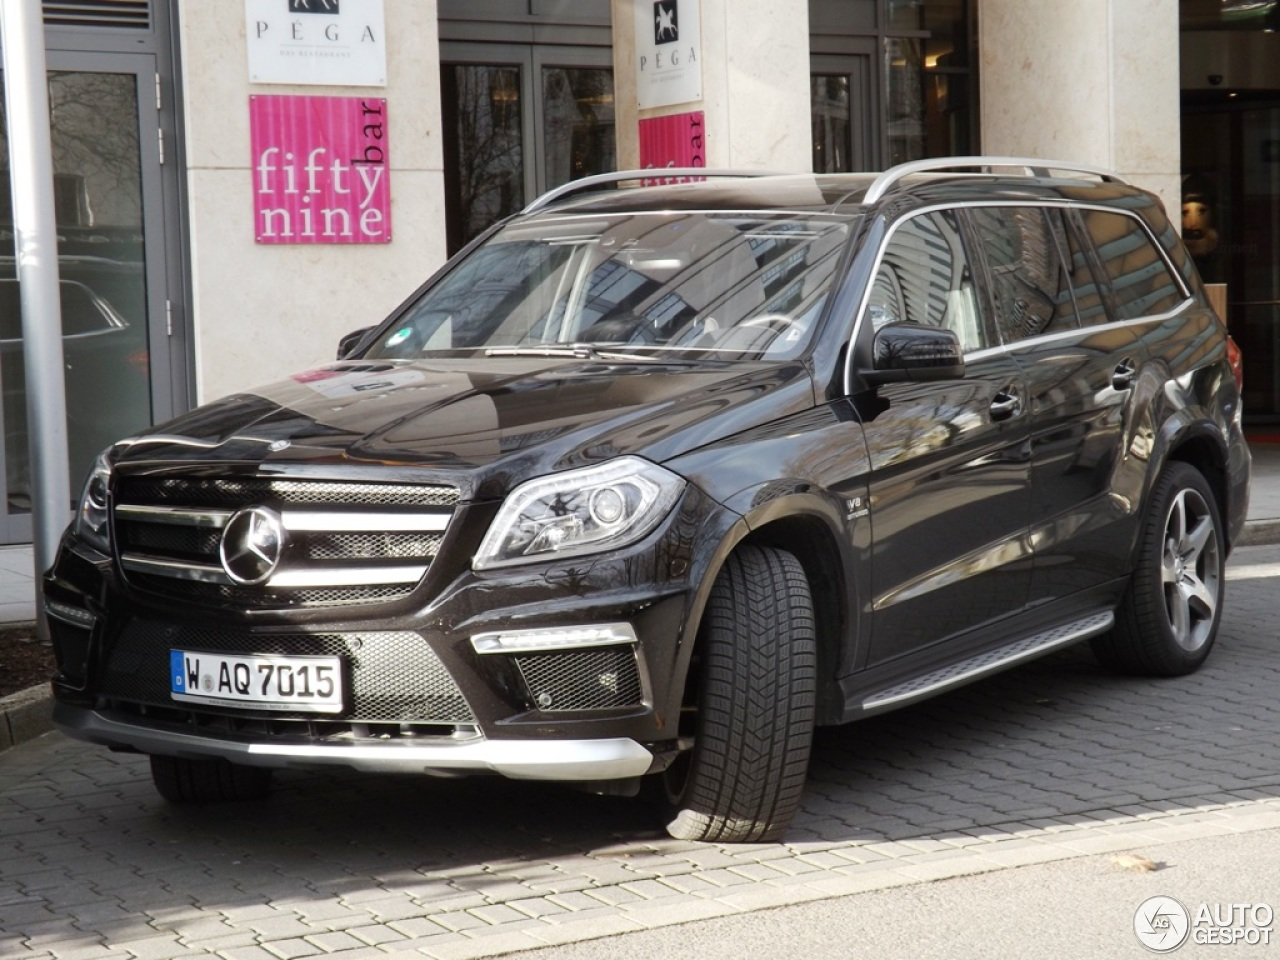 Mercedes benz gl 63 amg x166 14 december 2012 autogespot for Mercedes benz gls 63 amg